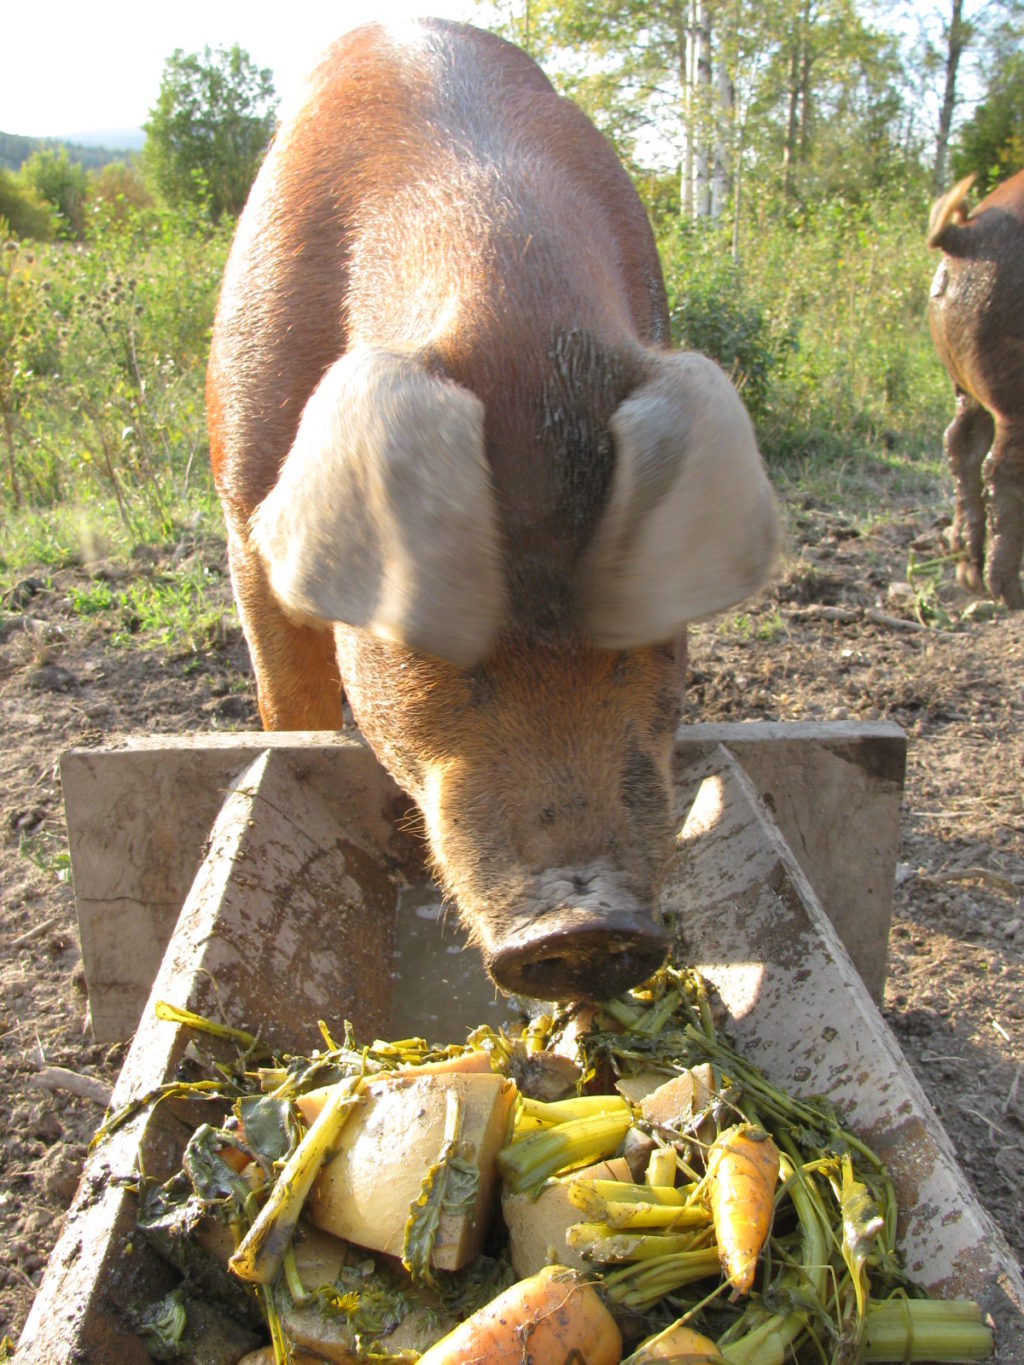 A pig eating cooked potatoes and root vegetables